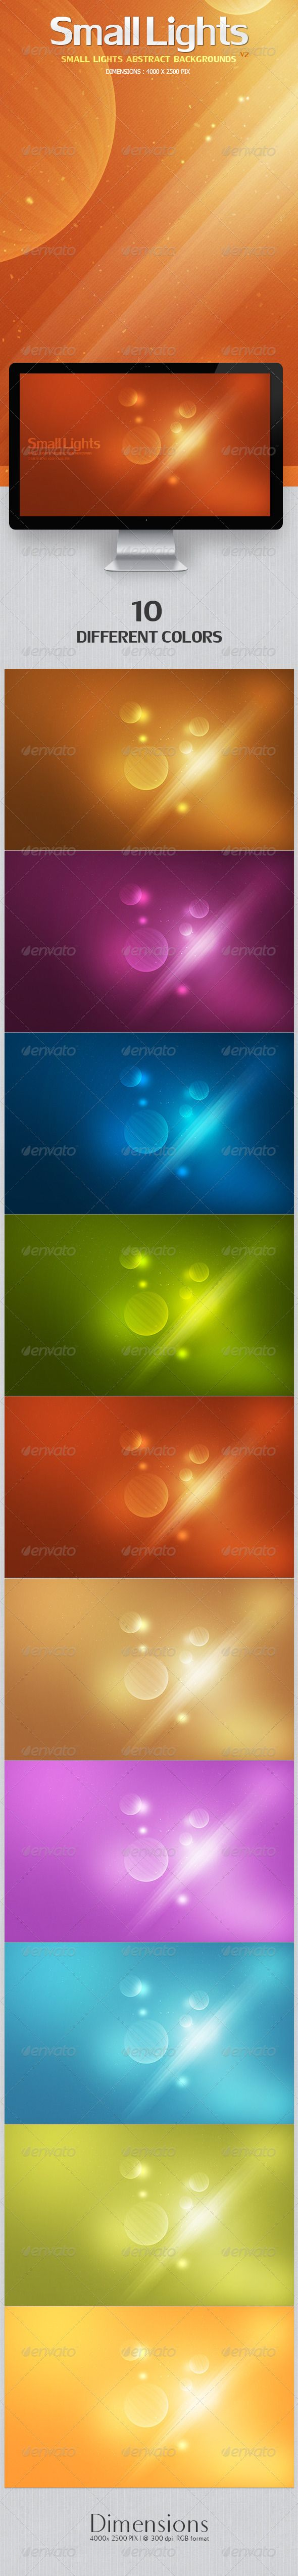 """Small Lights Abstract Backgrounds 